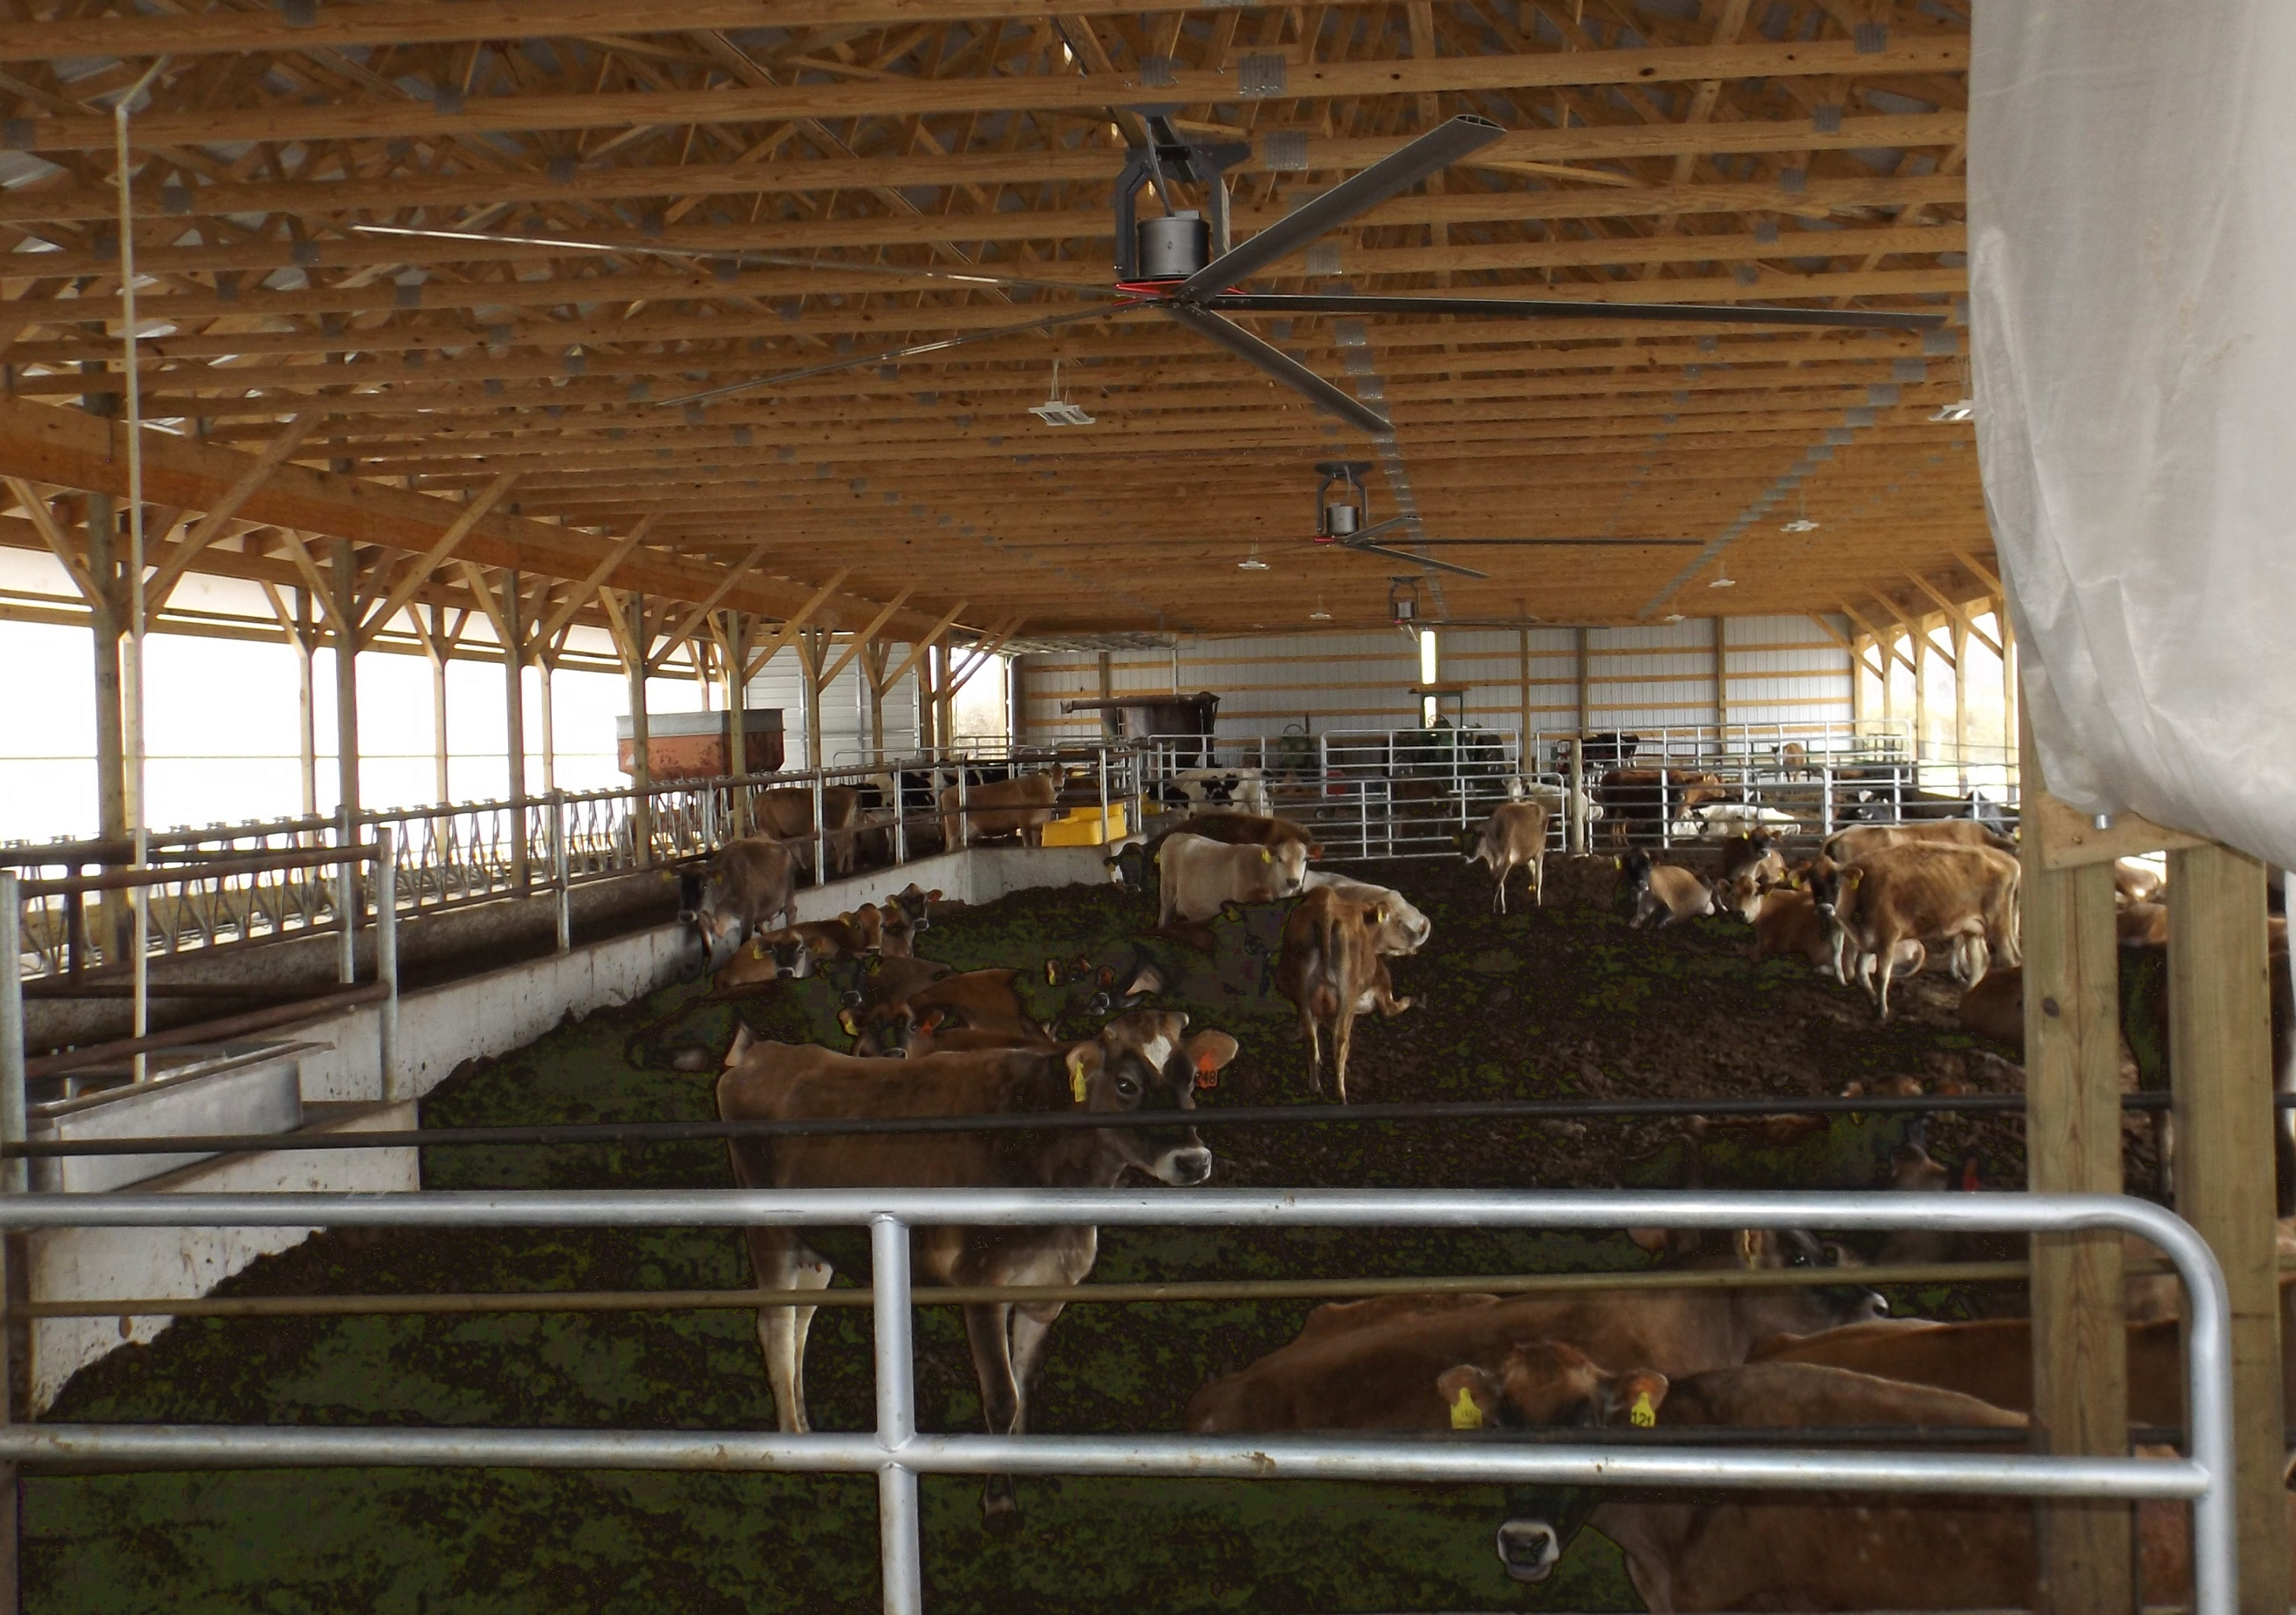 Compost Bed pack barn with ceiling fans